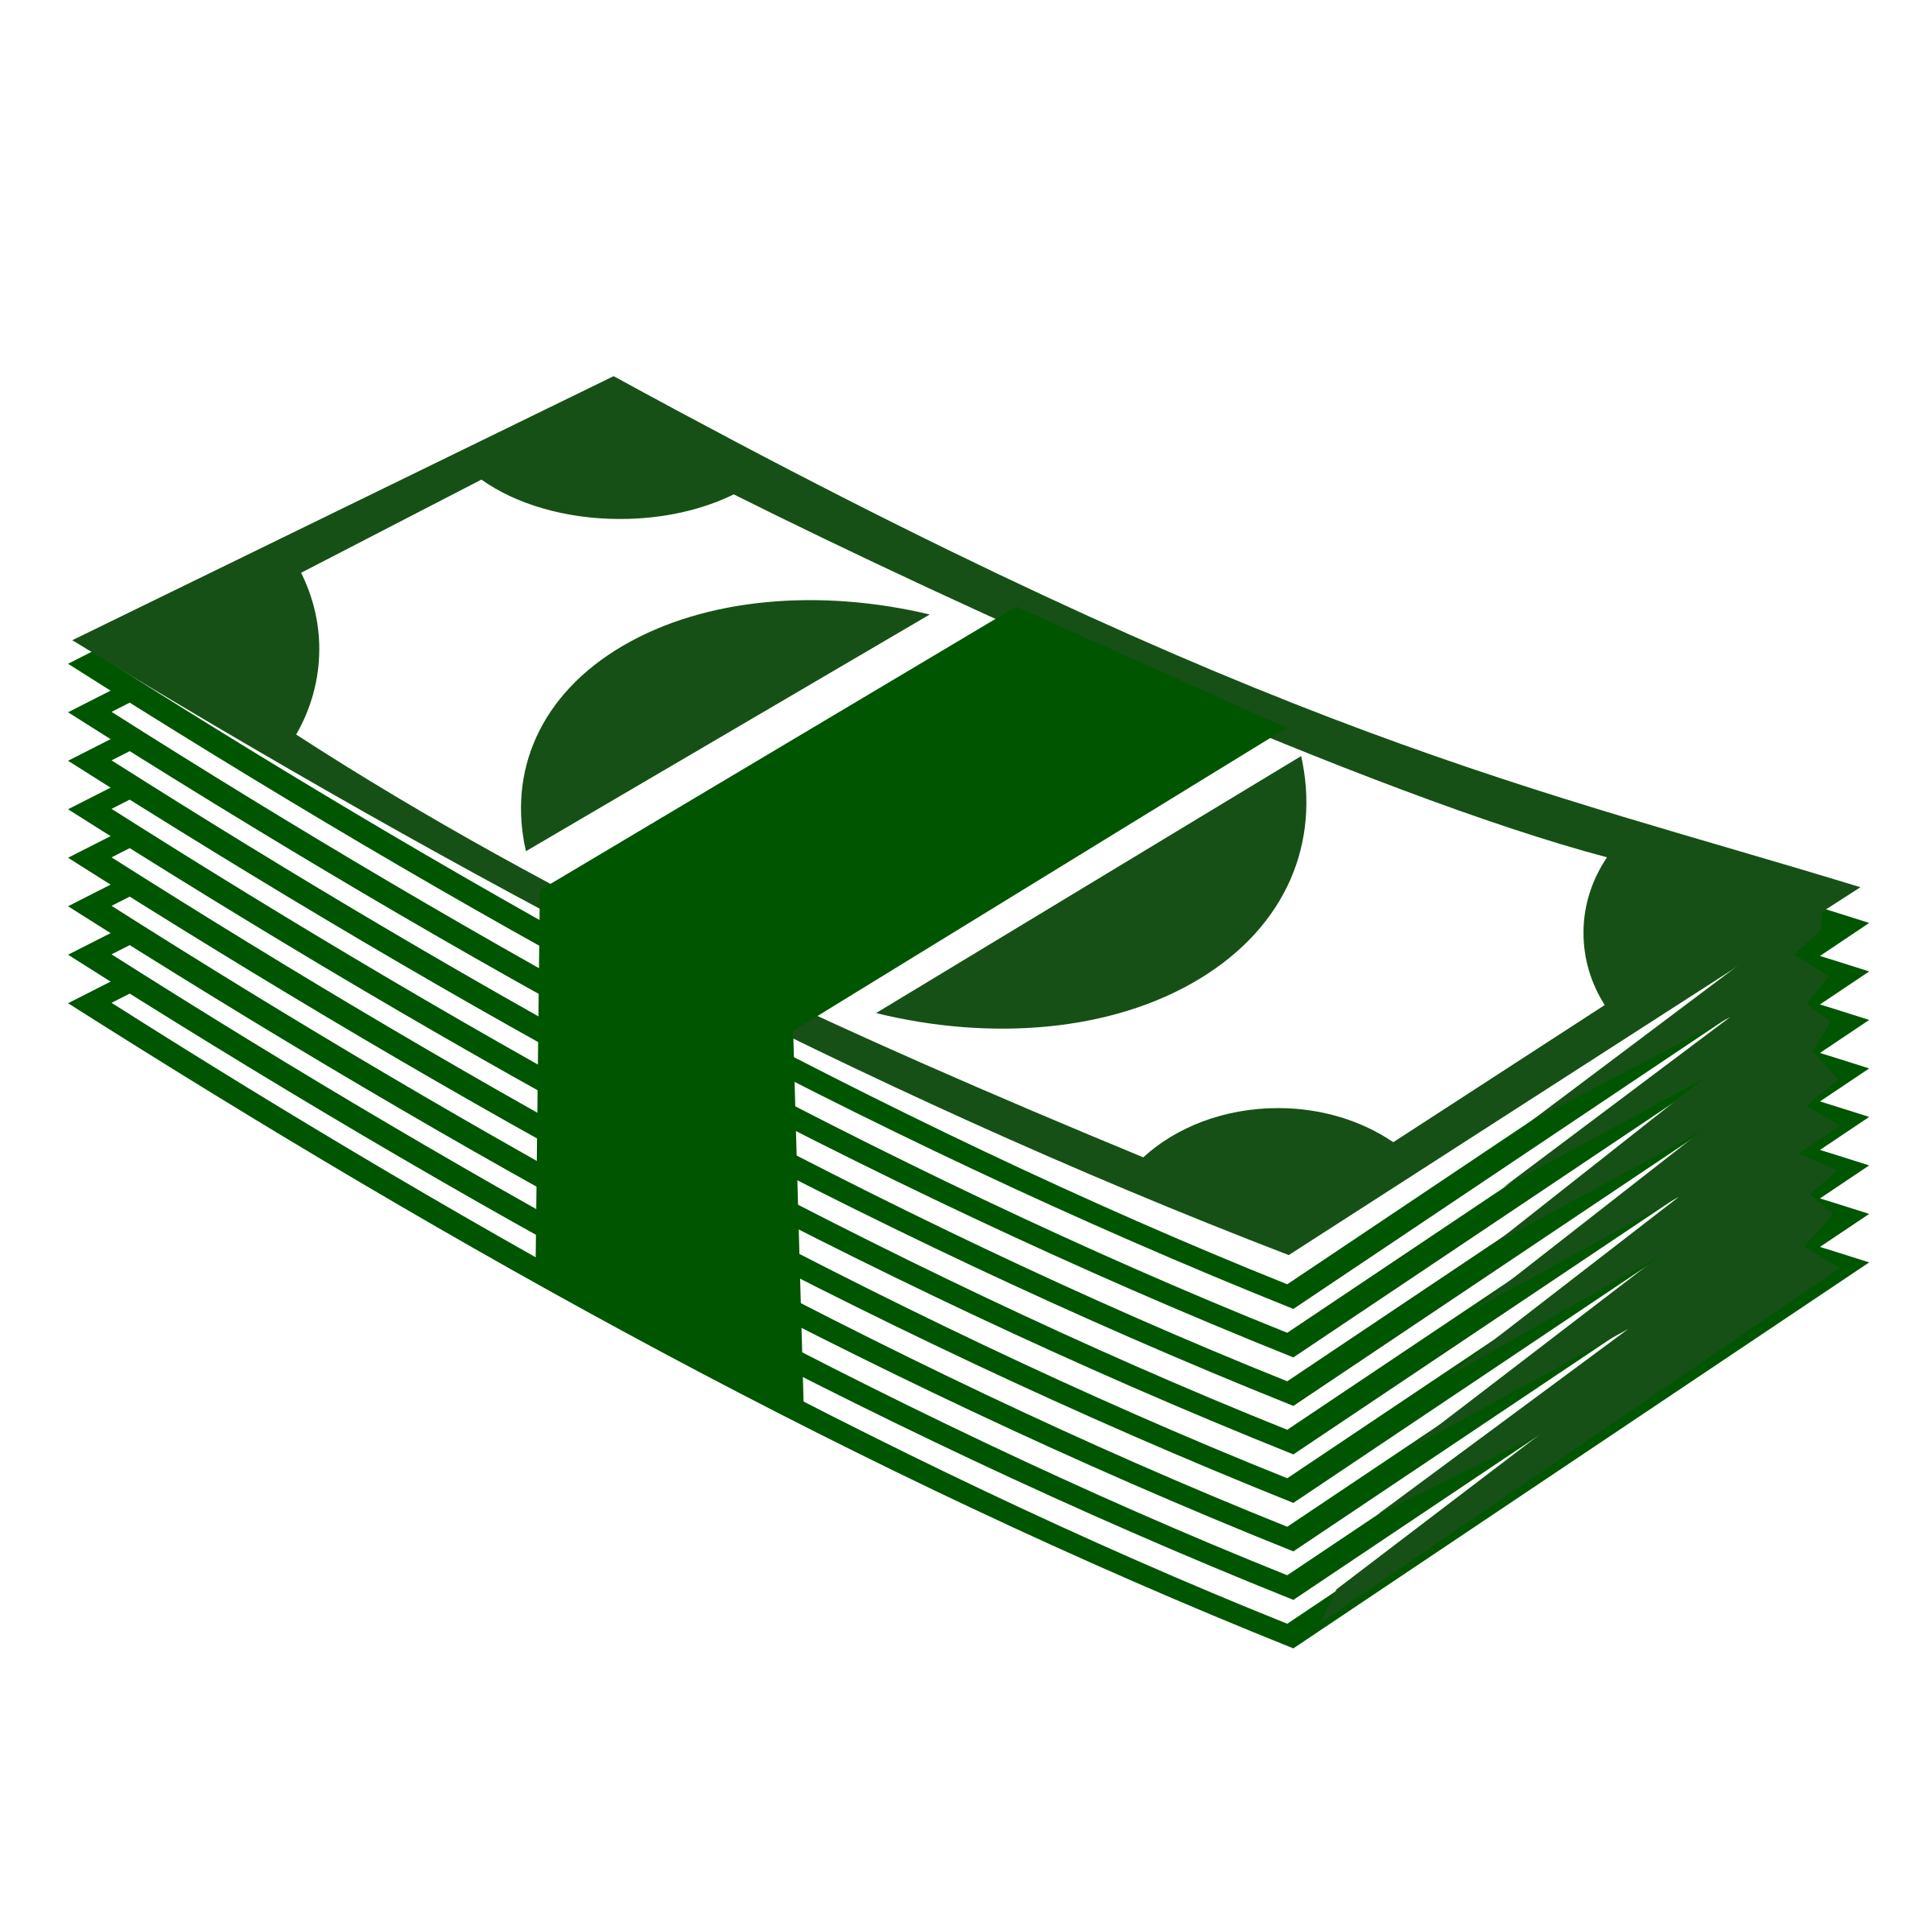 Free clipart money stacks picture royalty free stock 28+ Collection of Cash Clipart Png | High quality, free cliparts ... picture royalty free stock